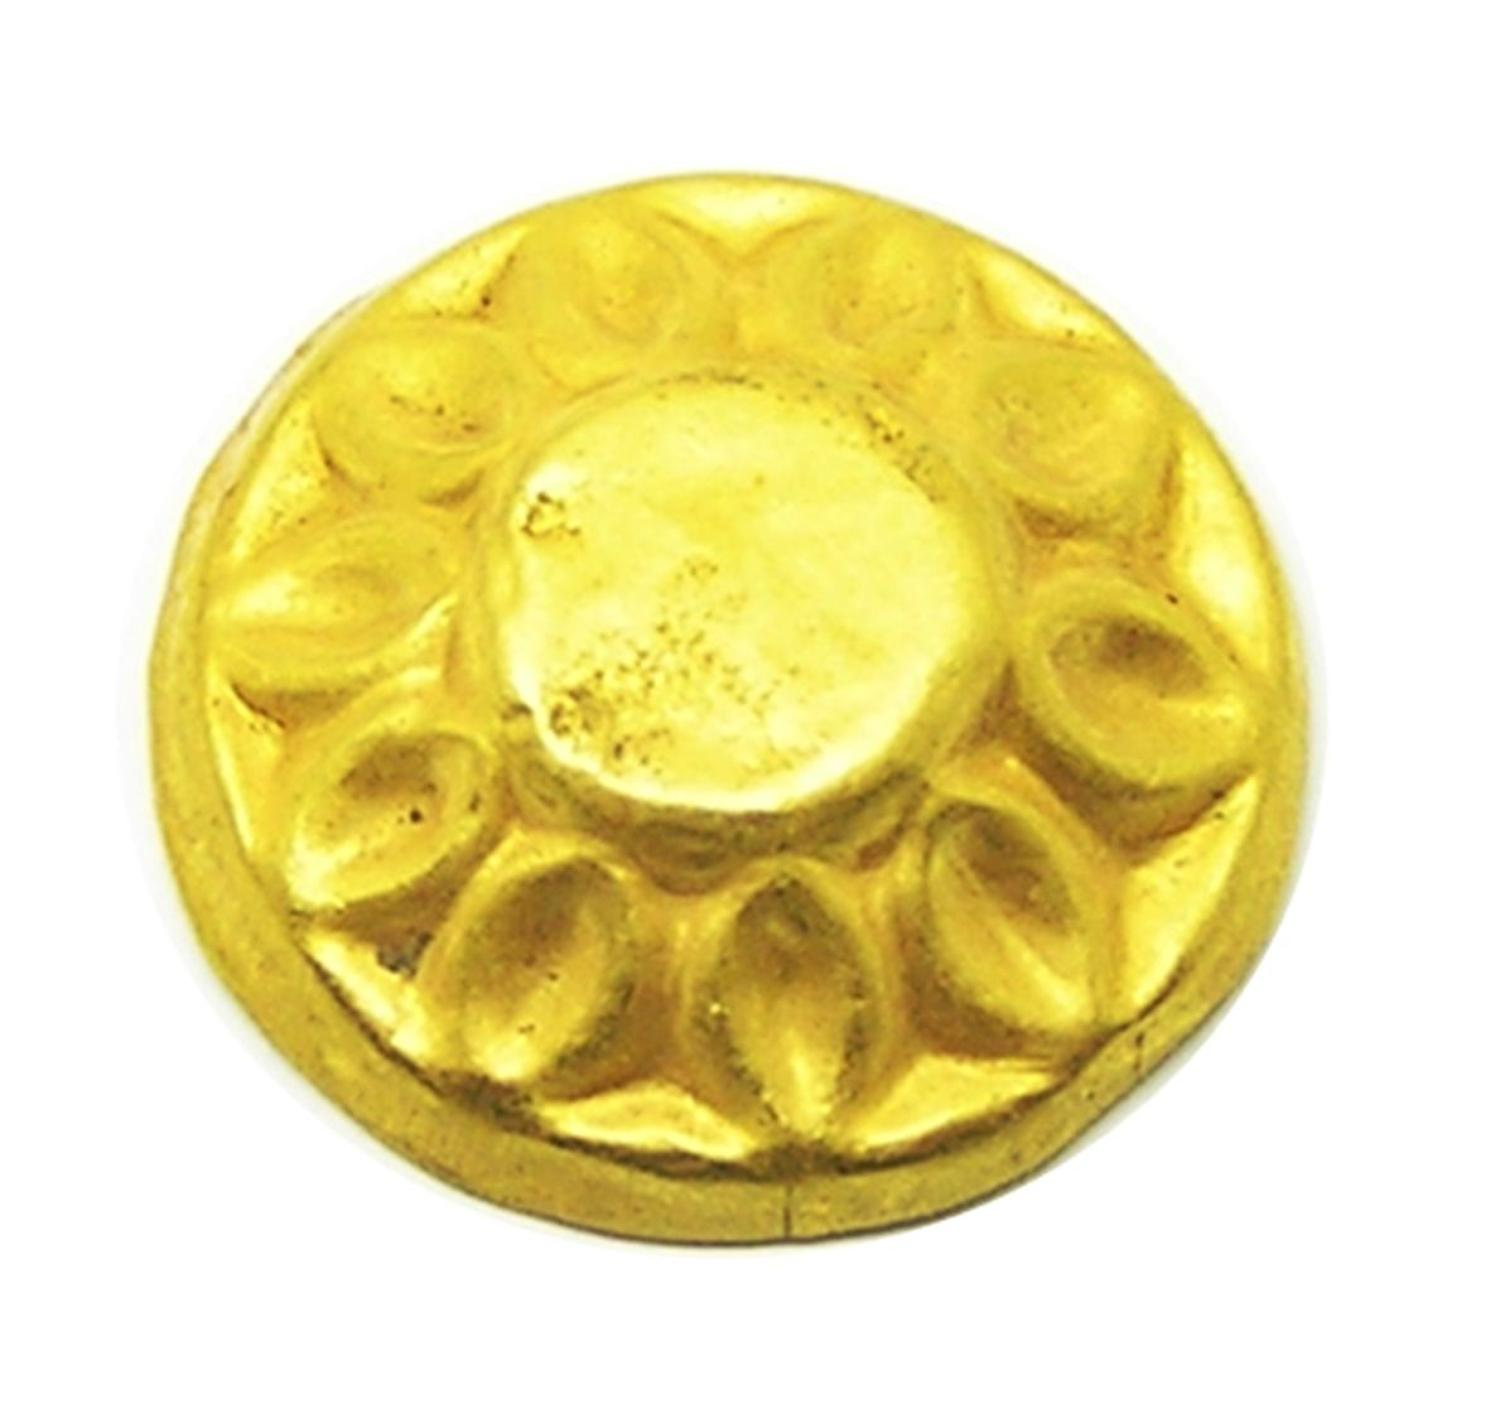 Ancient Scythian Greek Gold Appliqué Repoussé Design